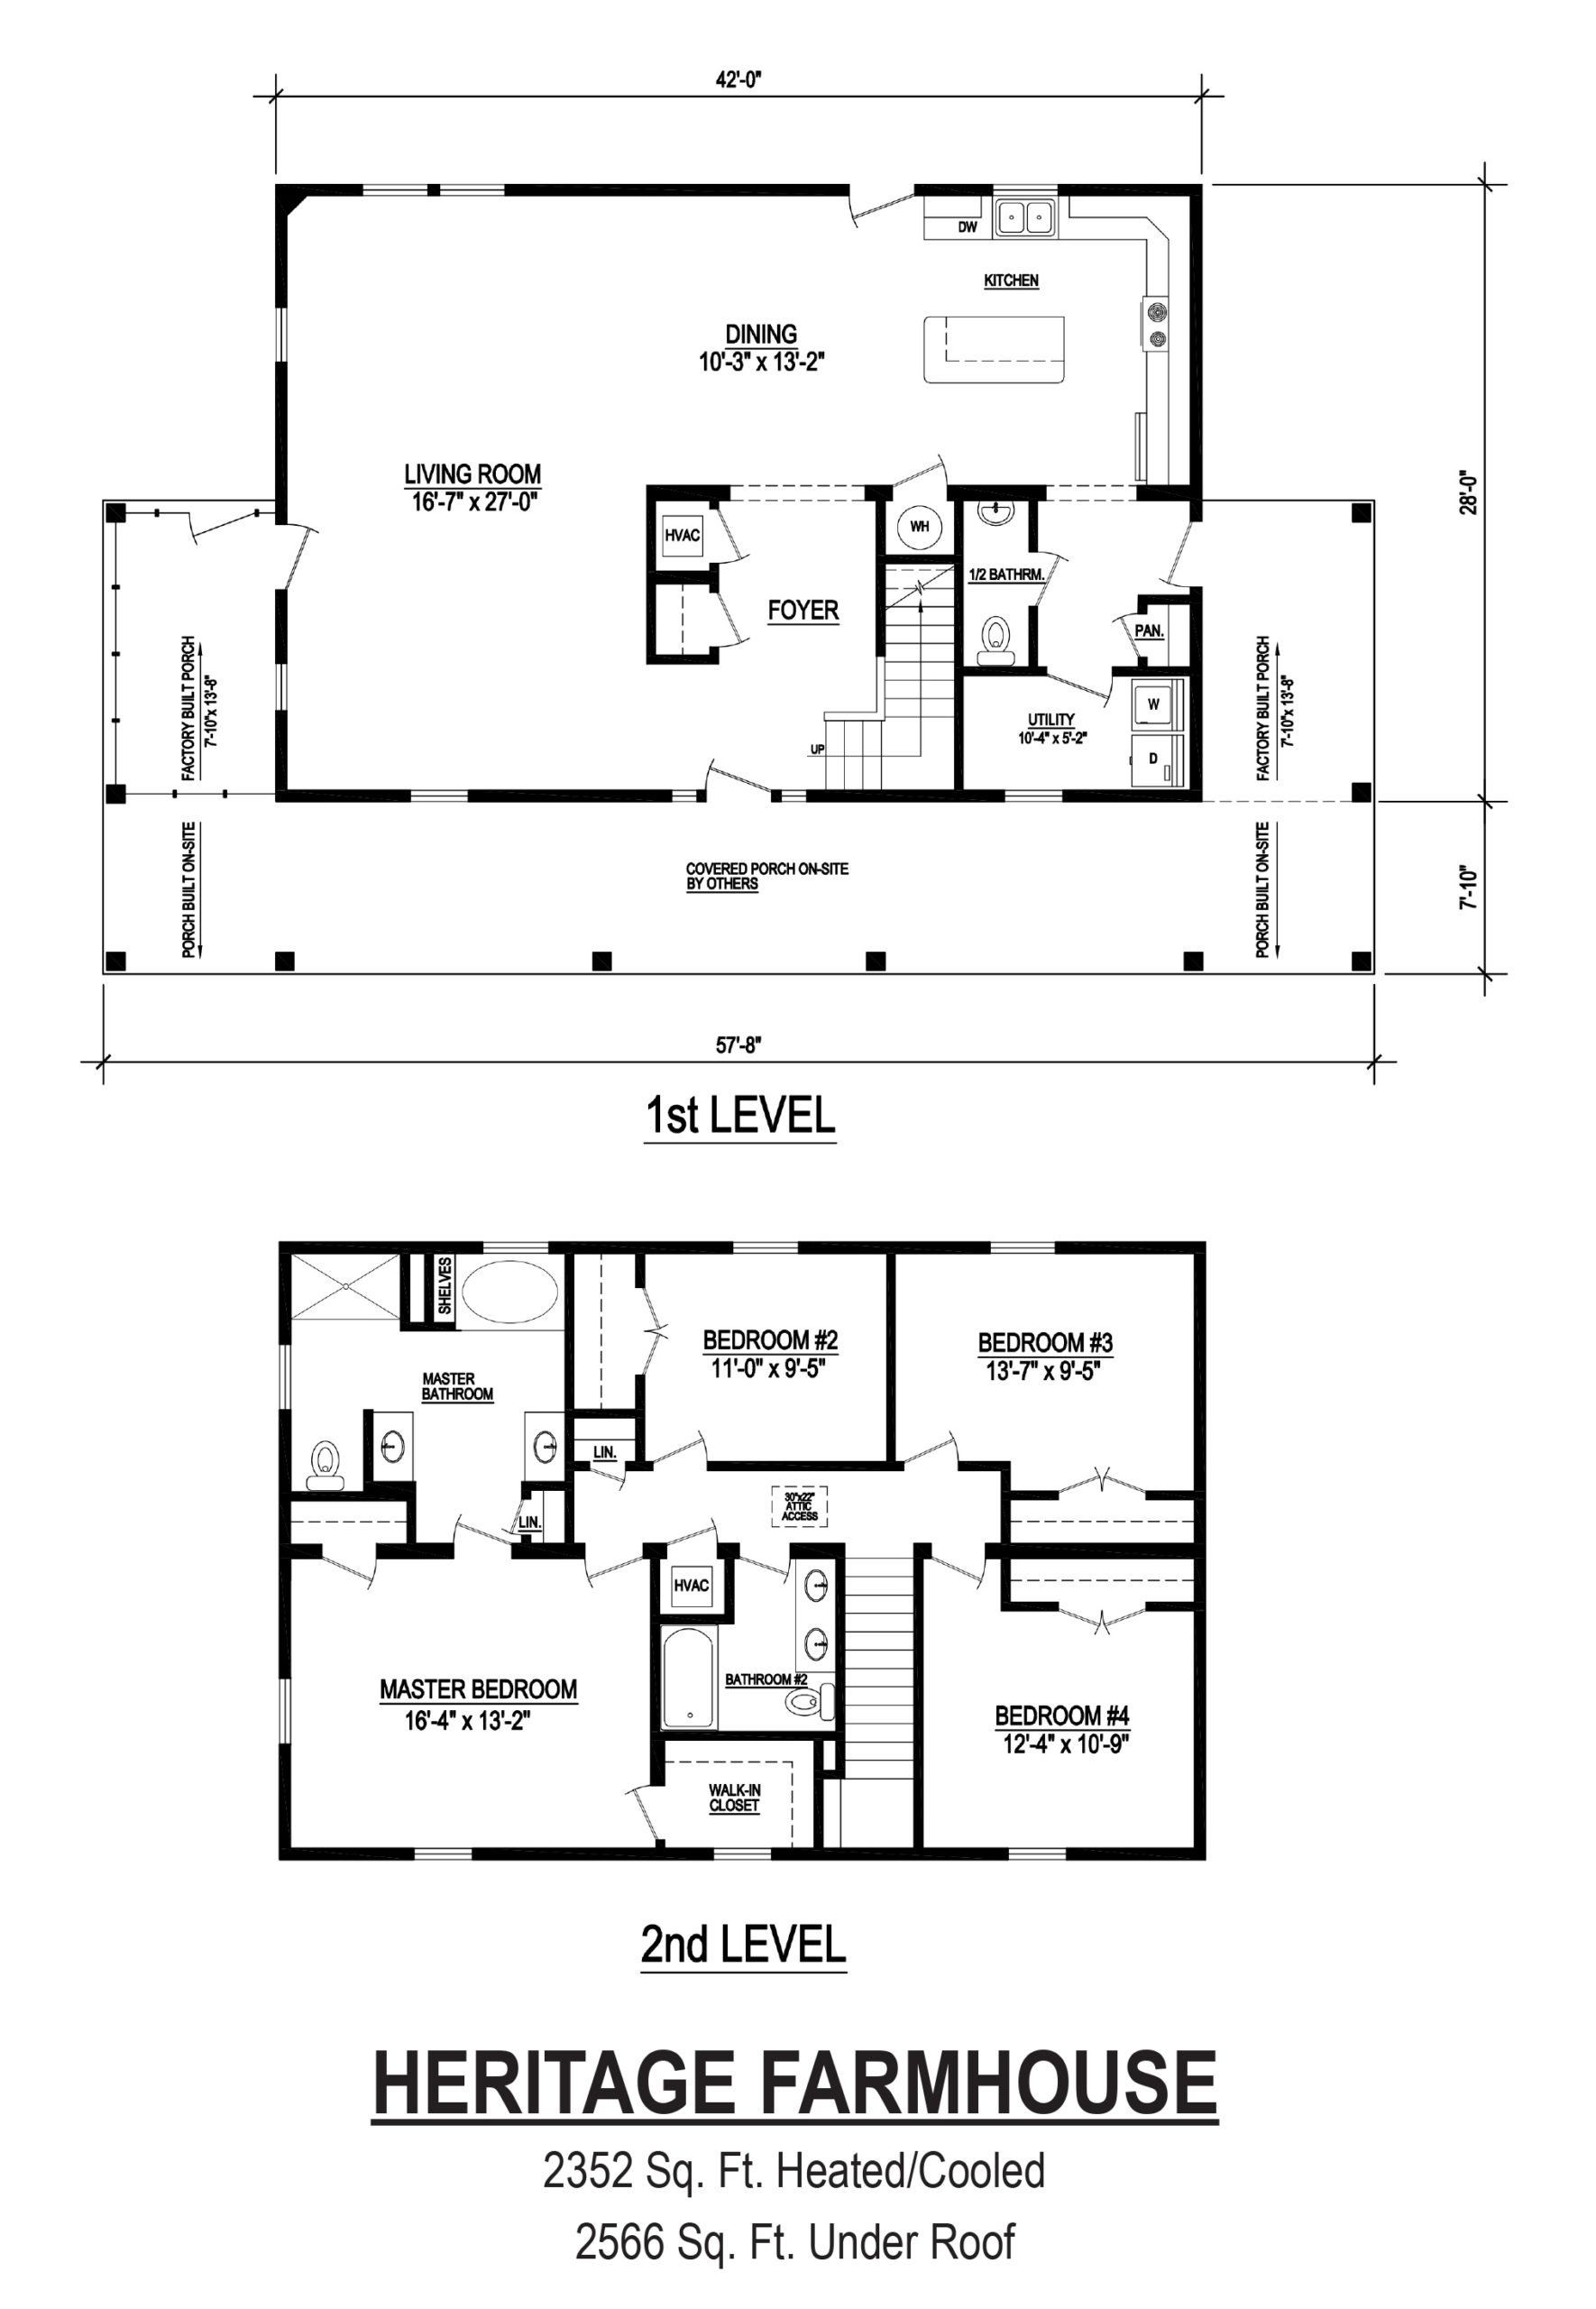 heritage farmhouse modular home floor plan